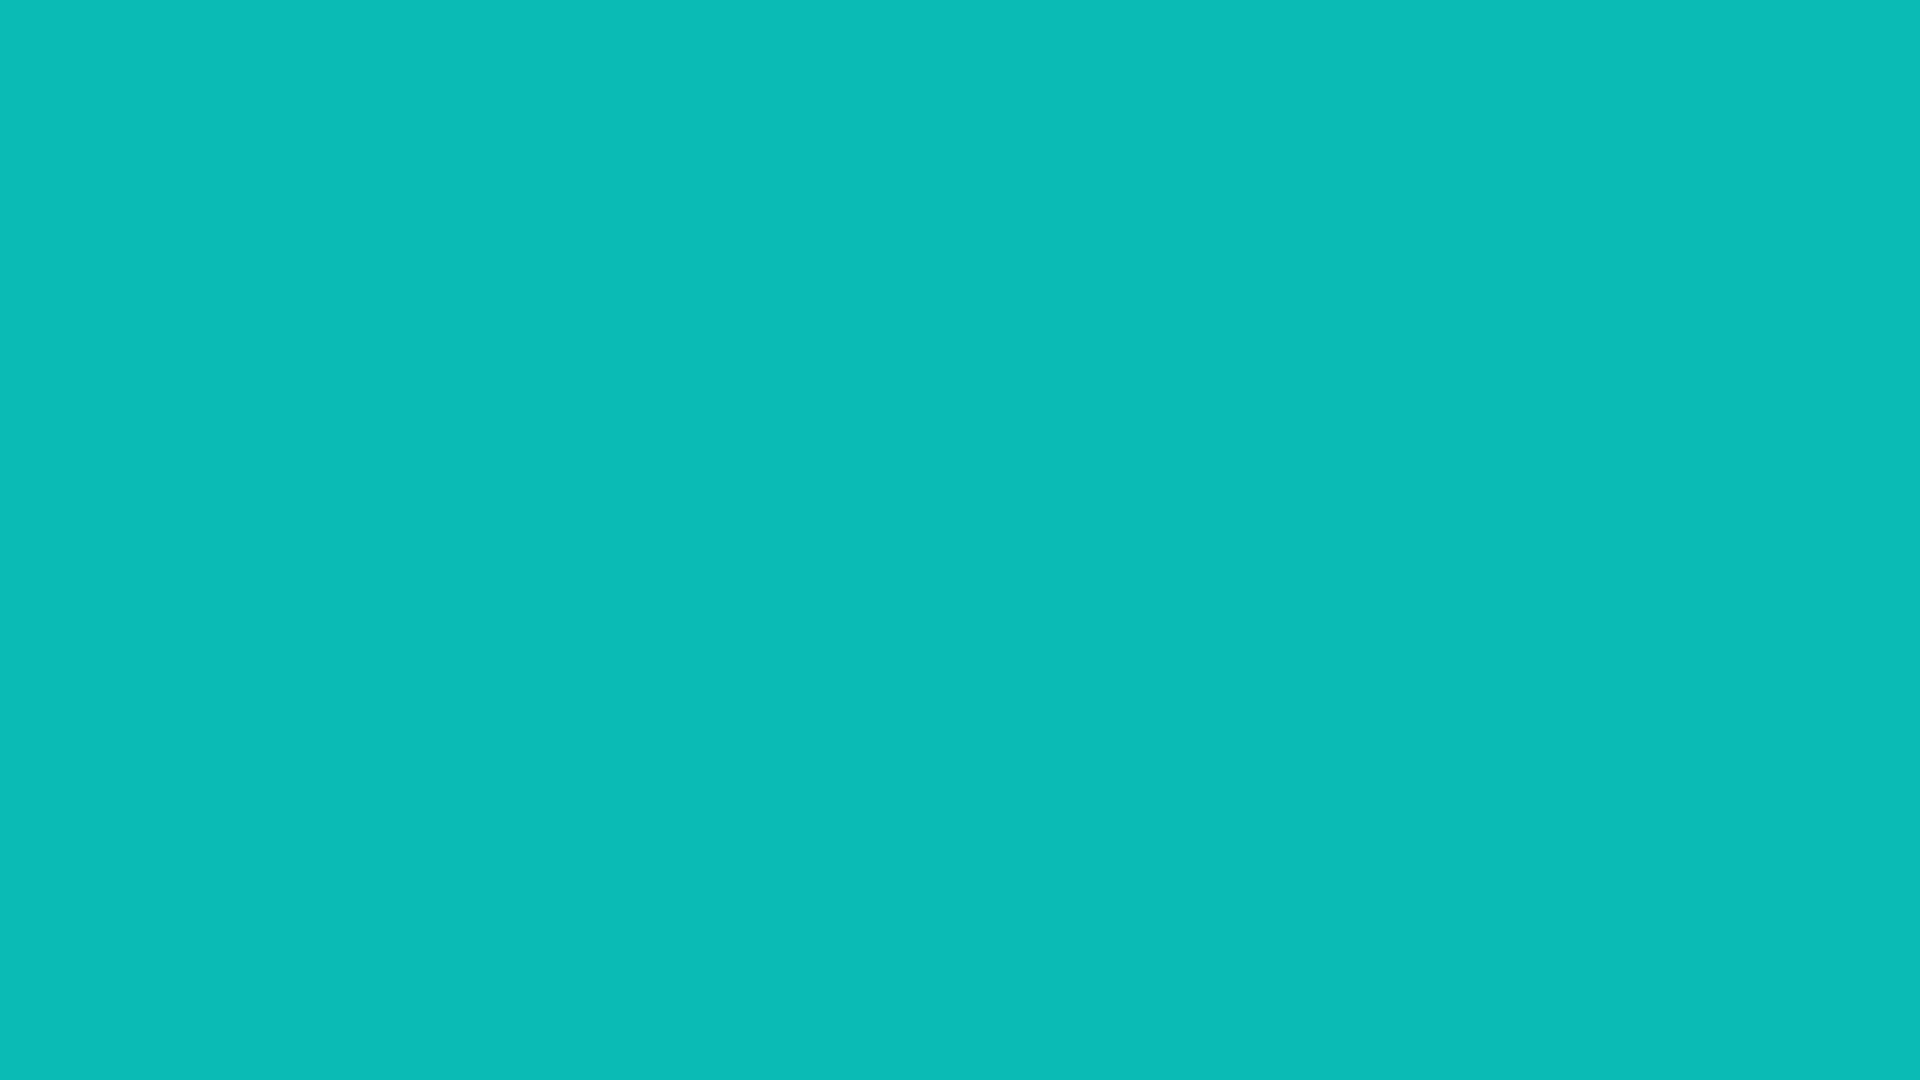 1920x1080 Tiffany Blue Solid Color Background